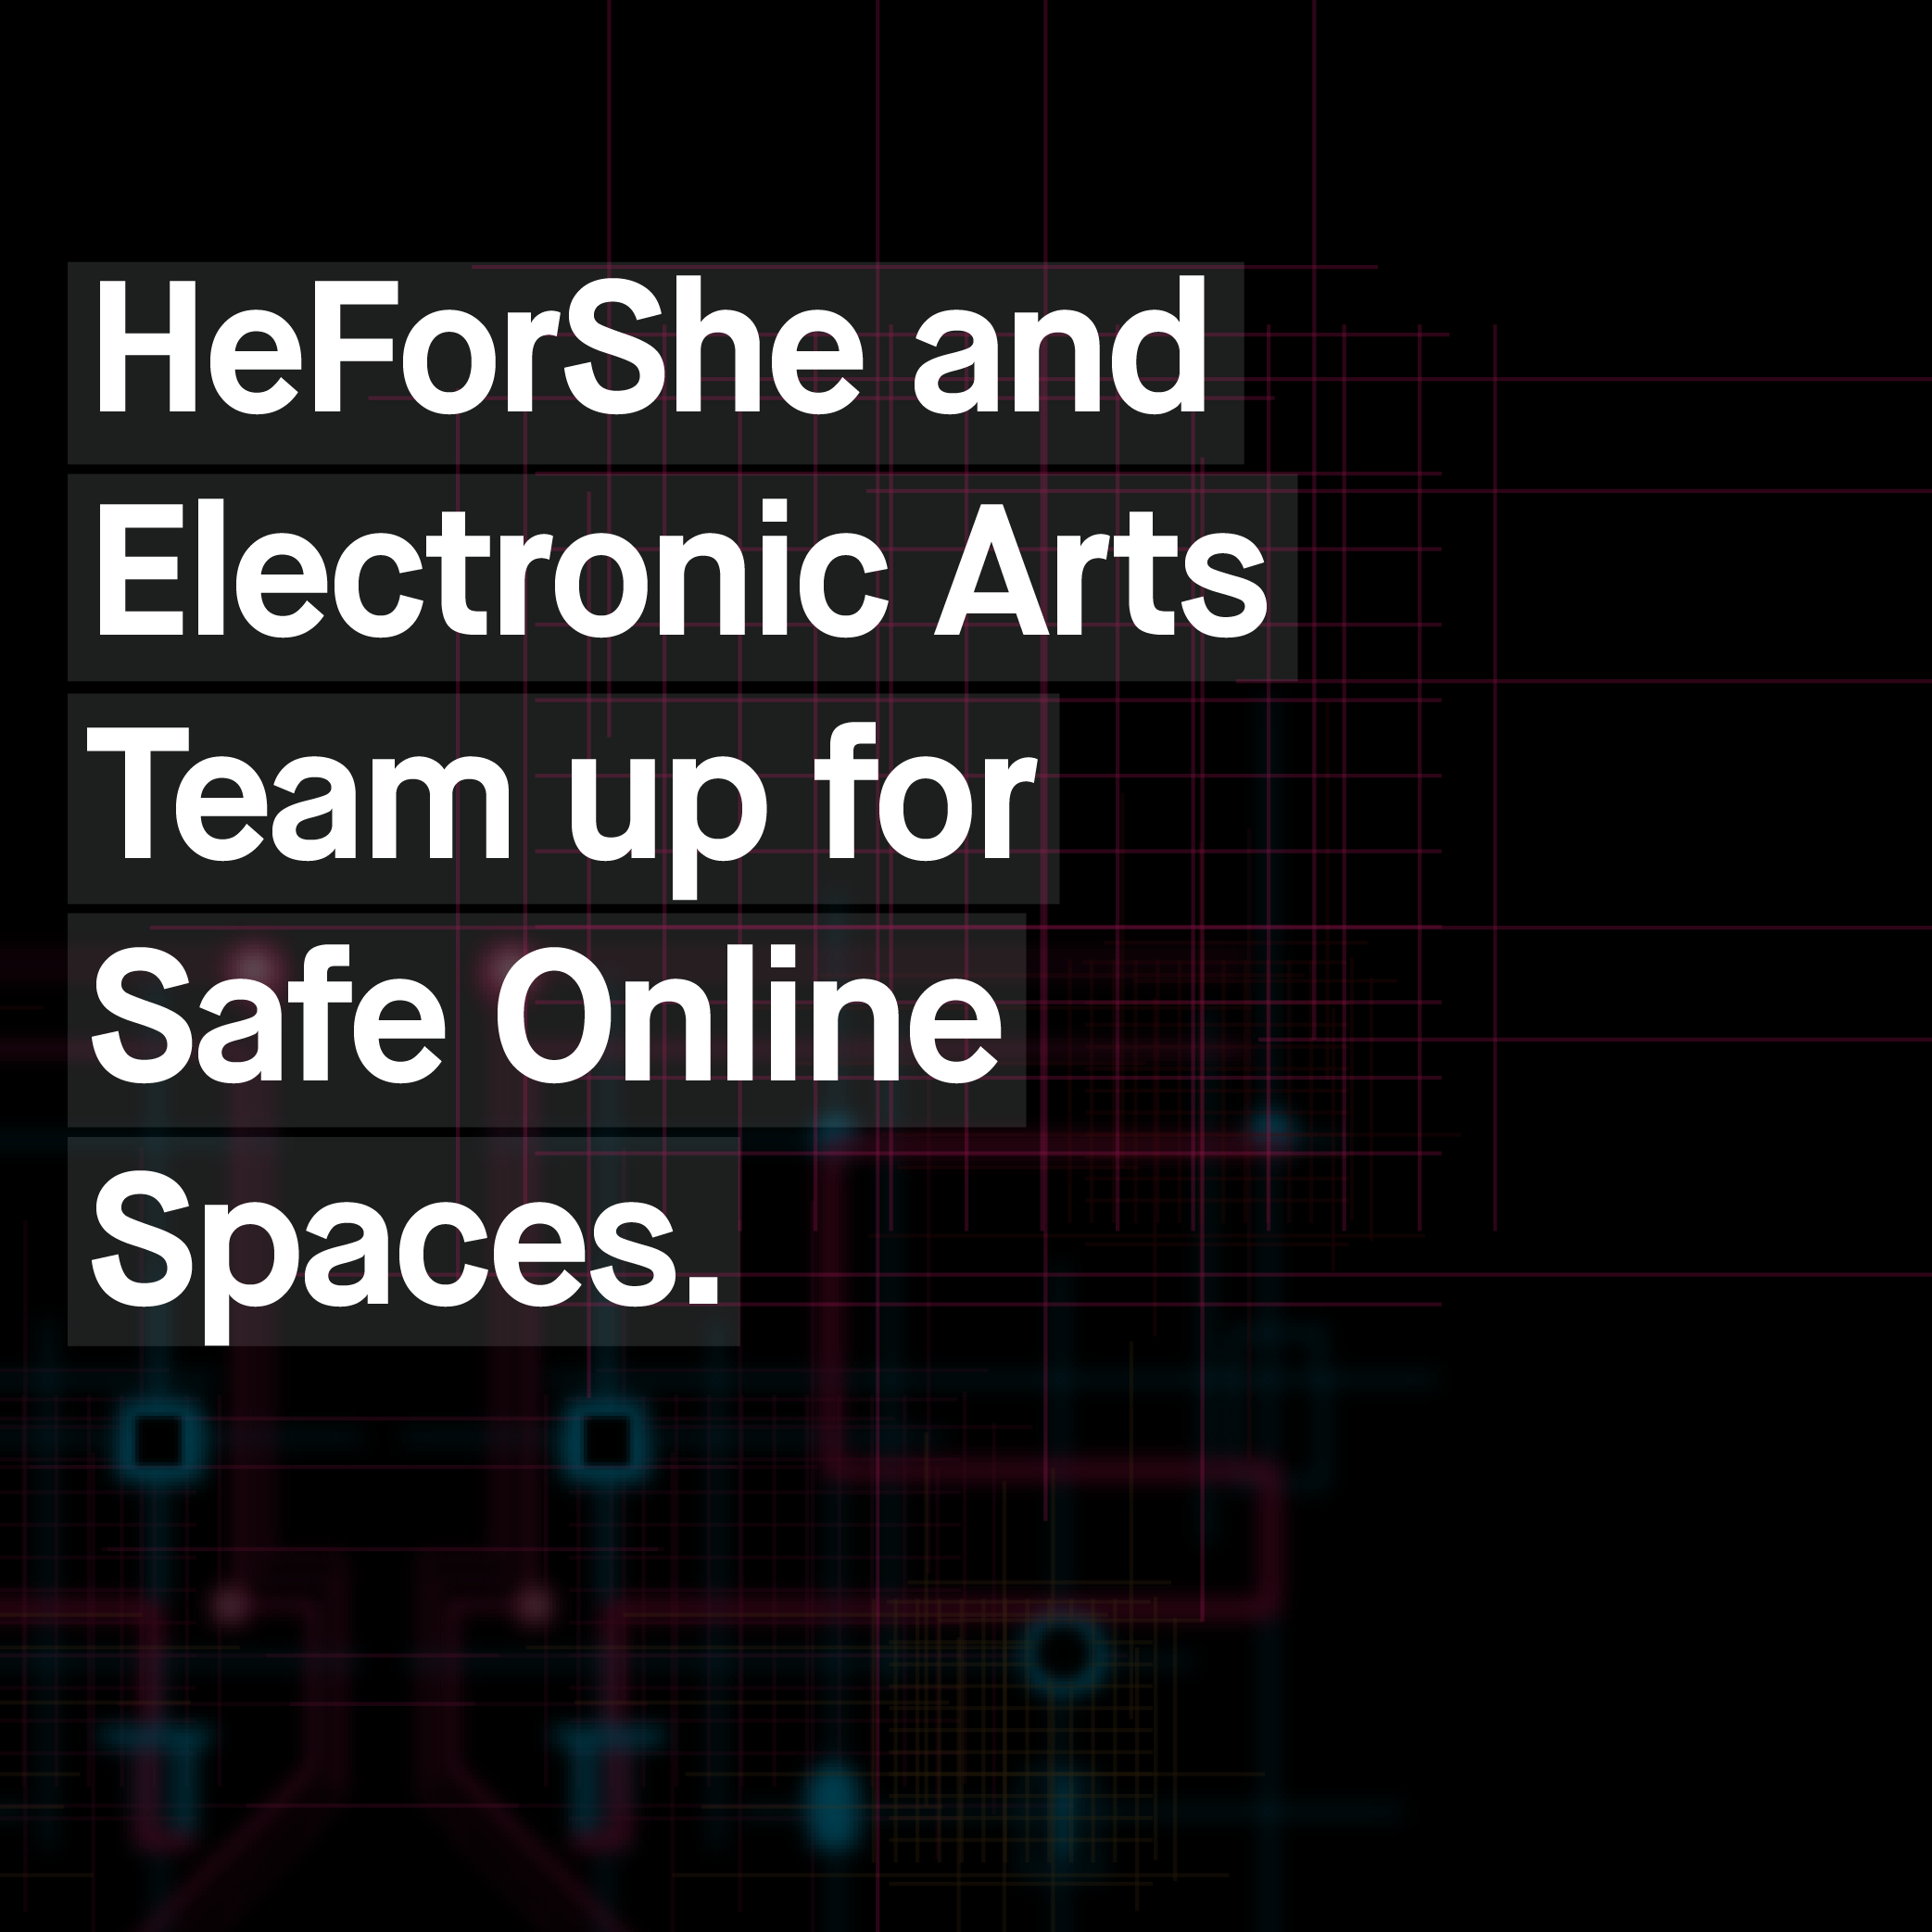 he for she and electronic arts team up for safe online spaces